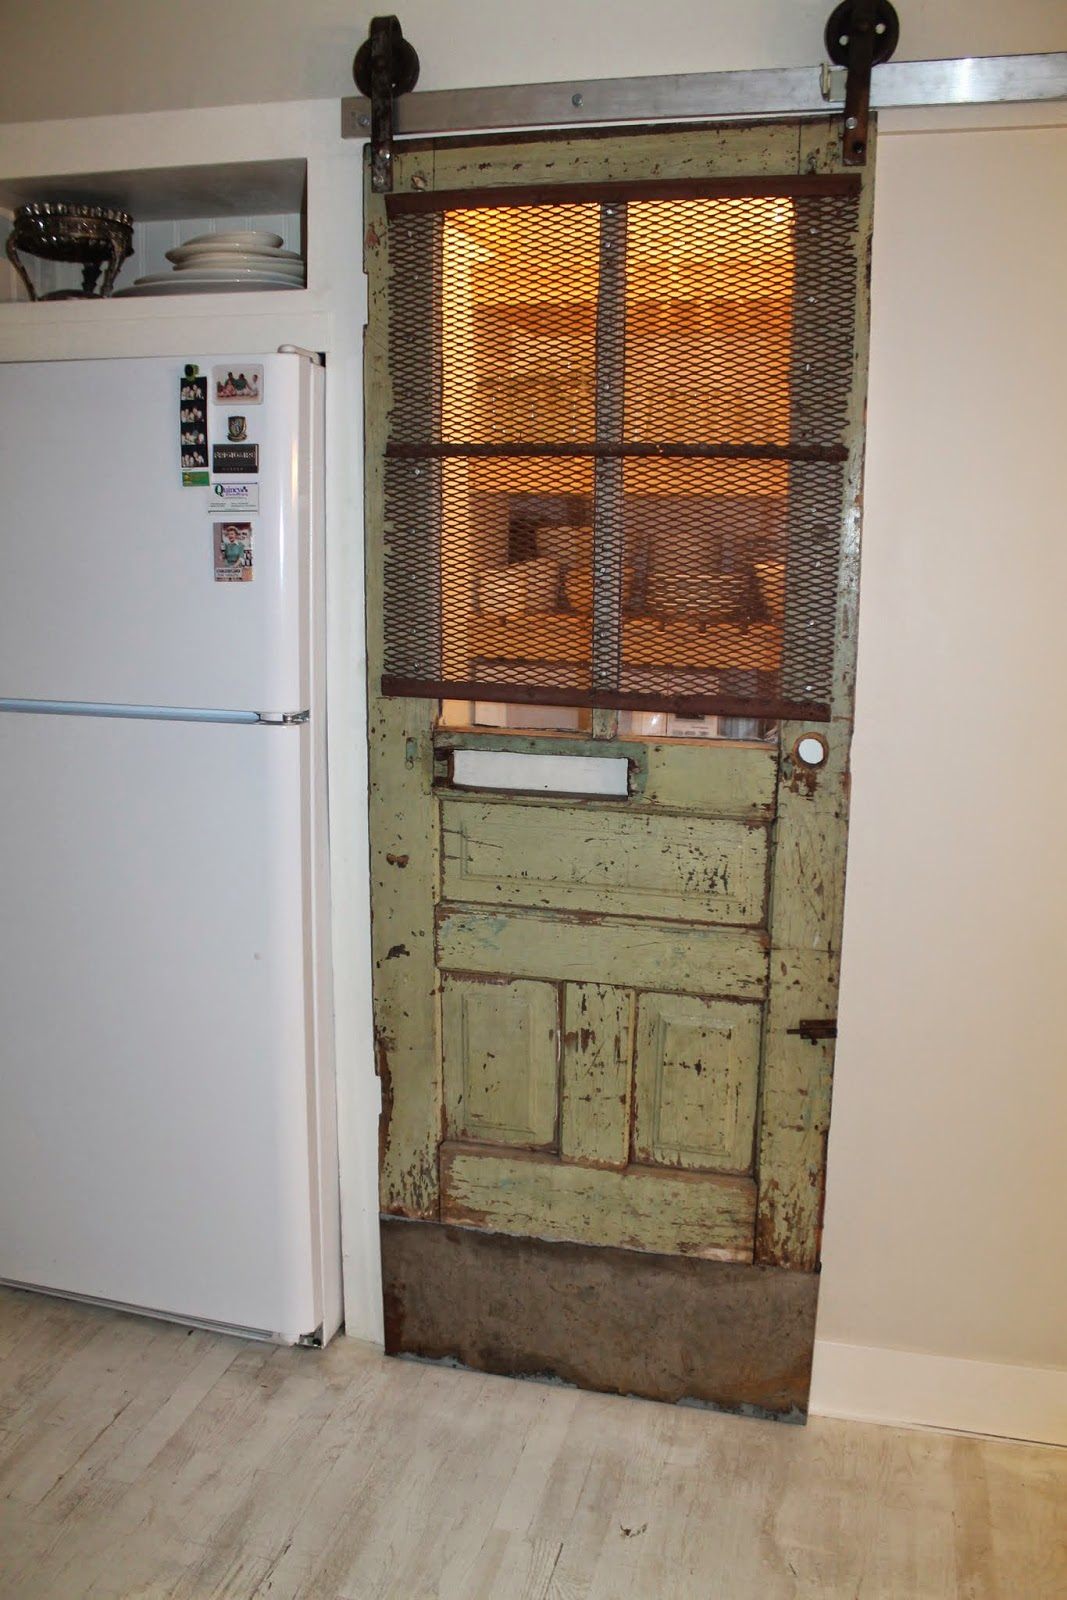 Ordinaire Vintage Pantry Barn Door With Screen And Automatic Light, Girl Meets  Carpenter On @Remodelaholic